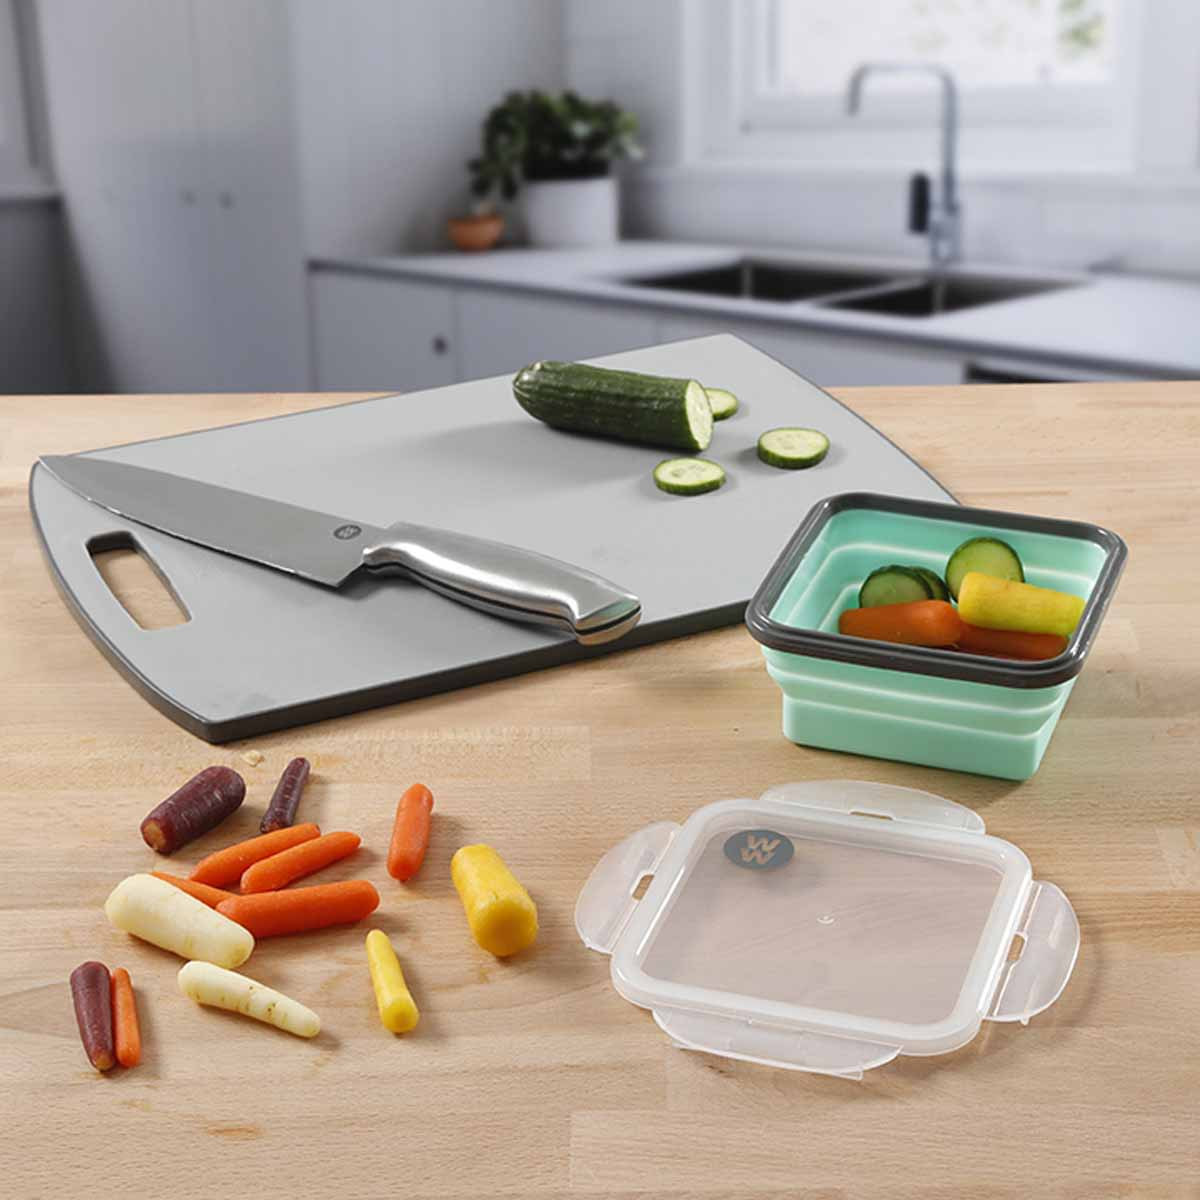 3-Piece Collapsible Silicone Lunch Containers - alternate view